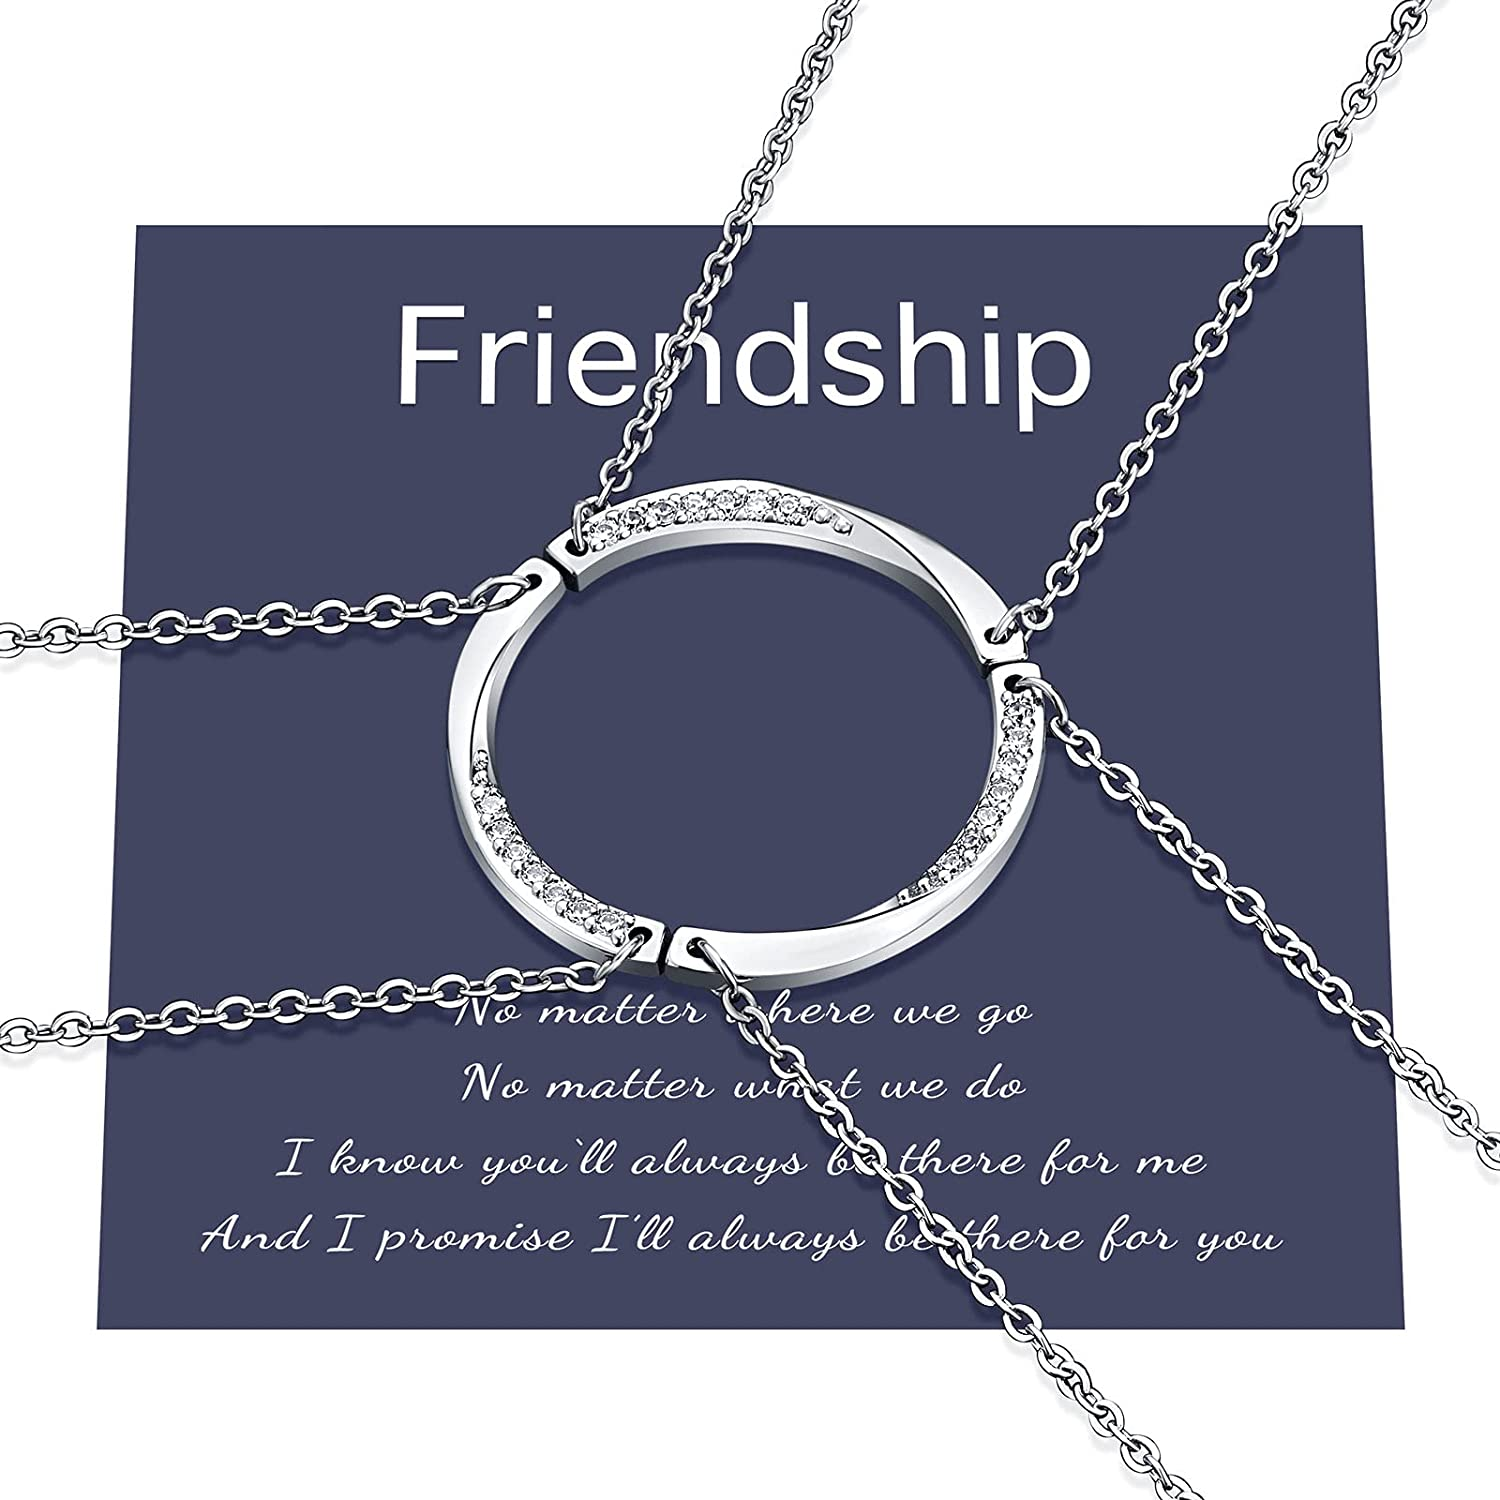 Friendship Circle Necklace Set Best Friend Friendship Matching BFF Necklace for 2/3 Girls Women Friends Sisters